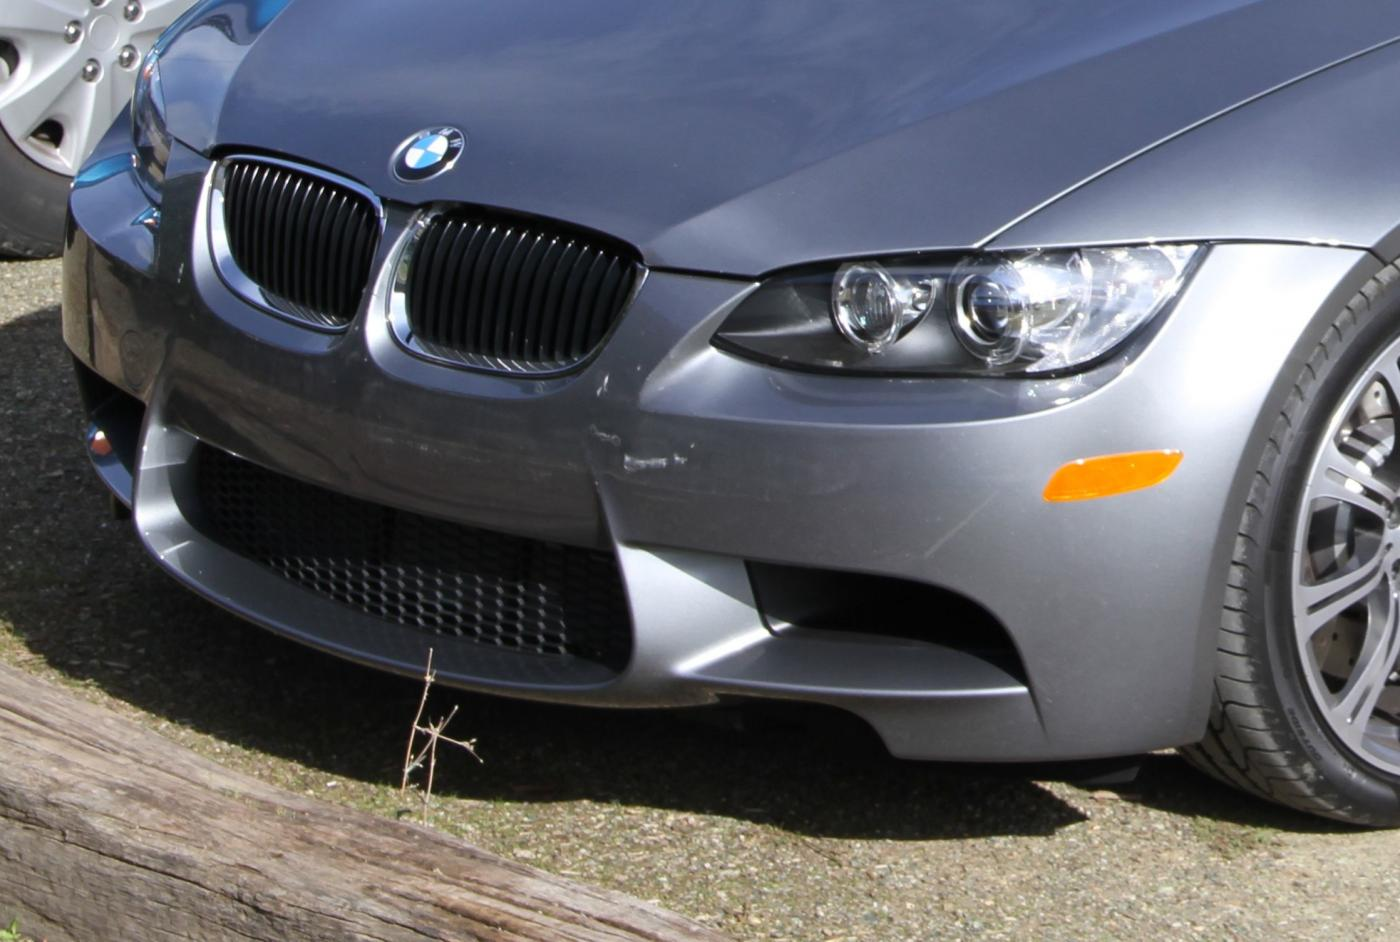 Front Bumper Replacement Cost >> Front Bumper Replacement Cost Bmw M3 Forum E90 E92